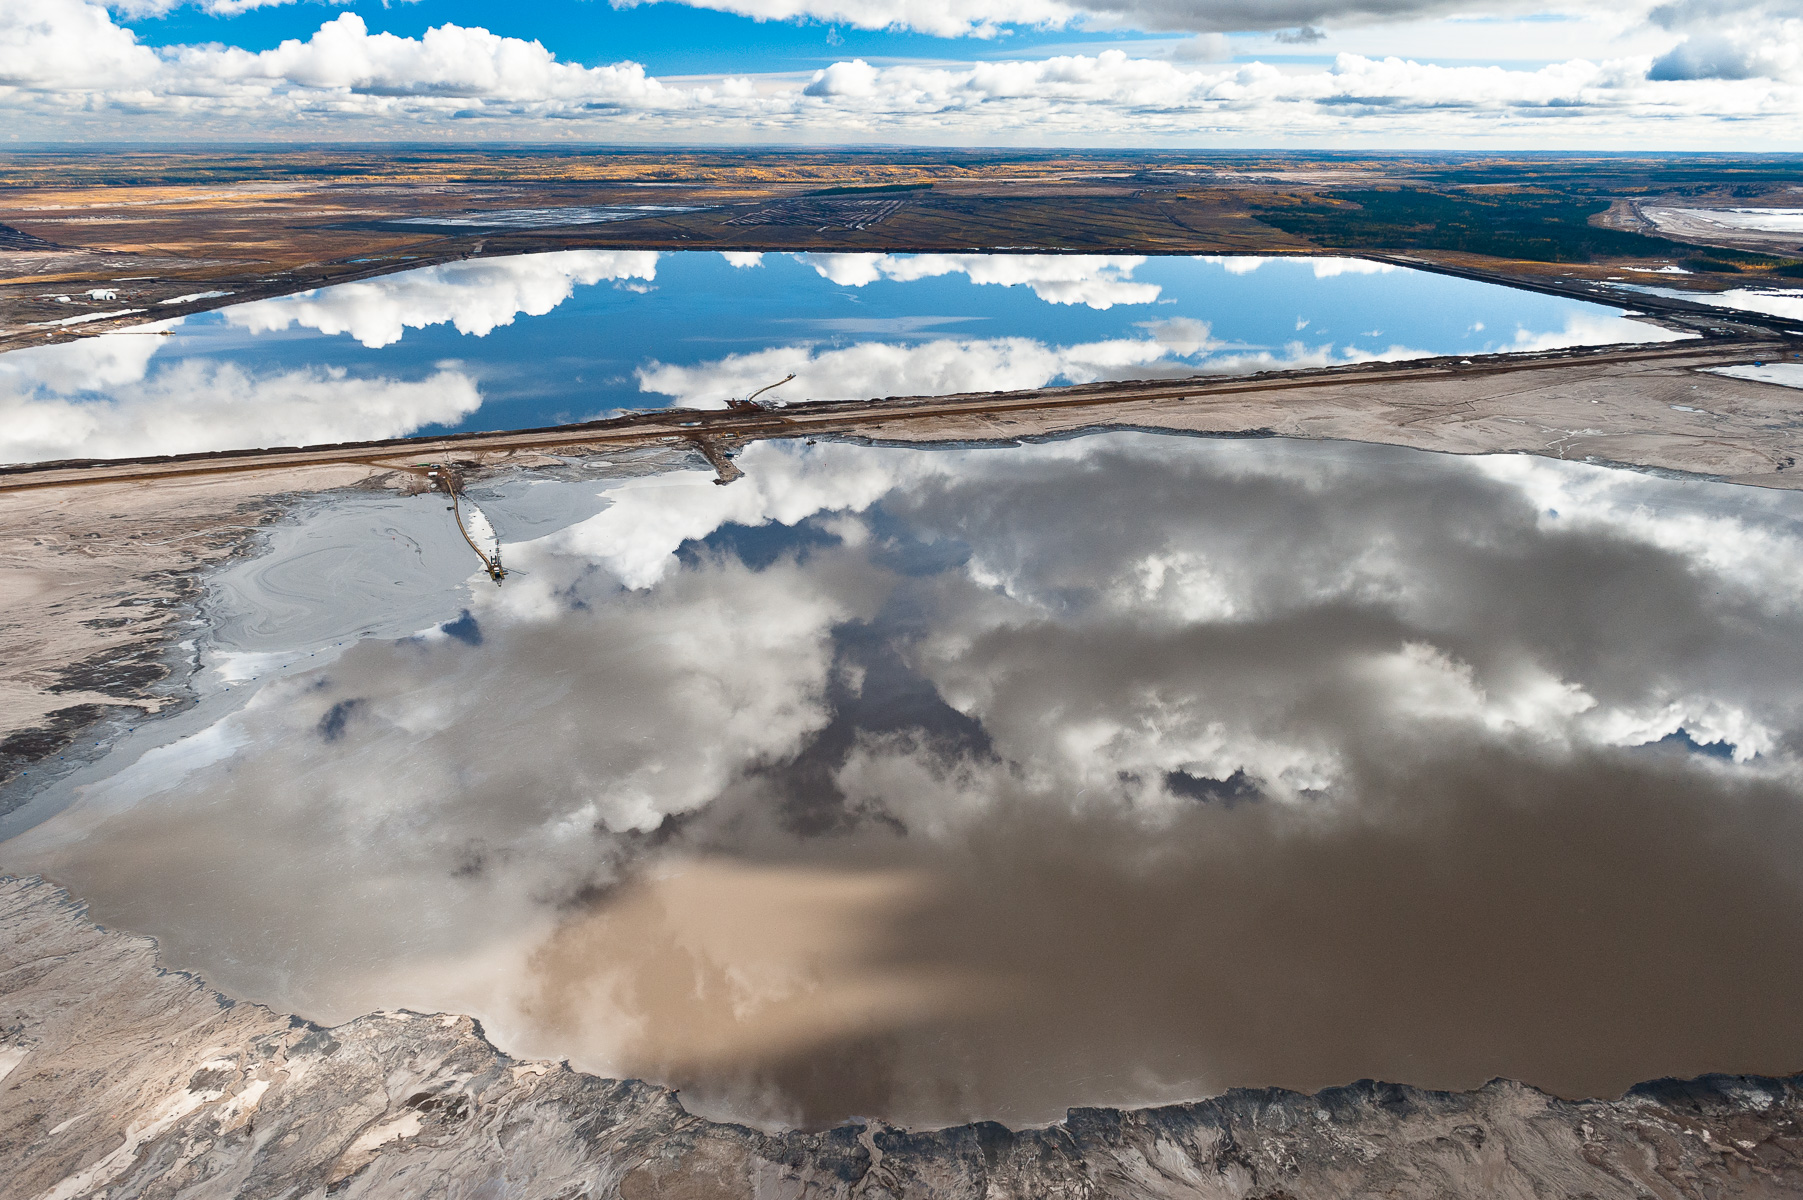 Reflected Sky in Tailings Pond.                                Northern Alberta. Canada. 2010. Disguised by the beauty of a reflection, these toxic tailings ponds are a considerable health risk. These vast toxic lakes are completely unlined and nearly a dozen of them lie on either side of the Athabasca River. Individual ponds can range in size up to 8,850 acres.      Nikon D3 70-200mm f2.8 shot at 190mm, ISO 800, 1/1600 at f4.5  gAlberta Tar Sands, Northern Alberta, Canada.